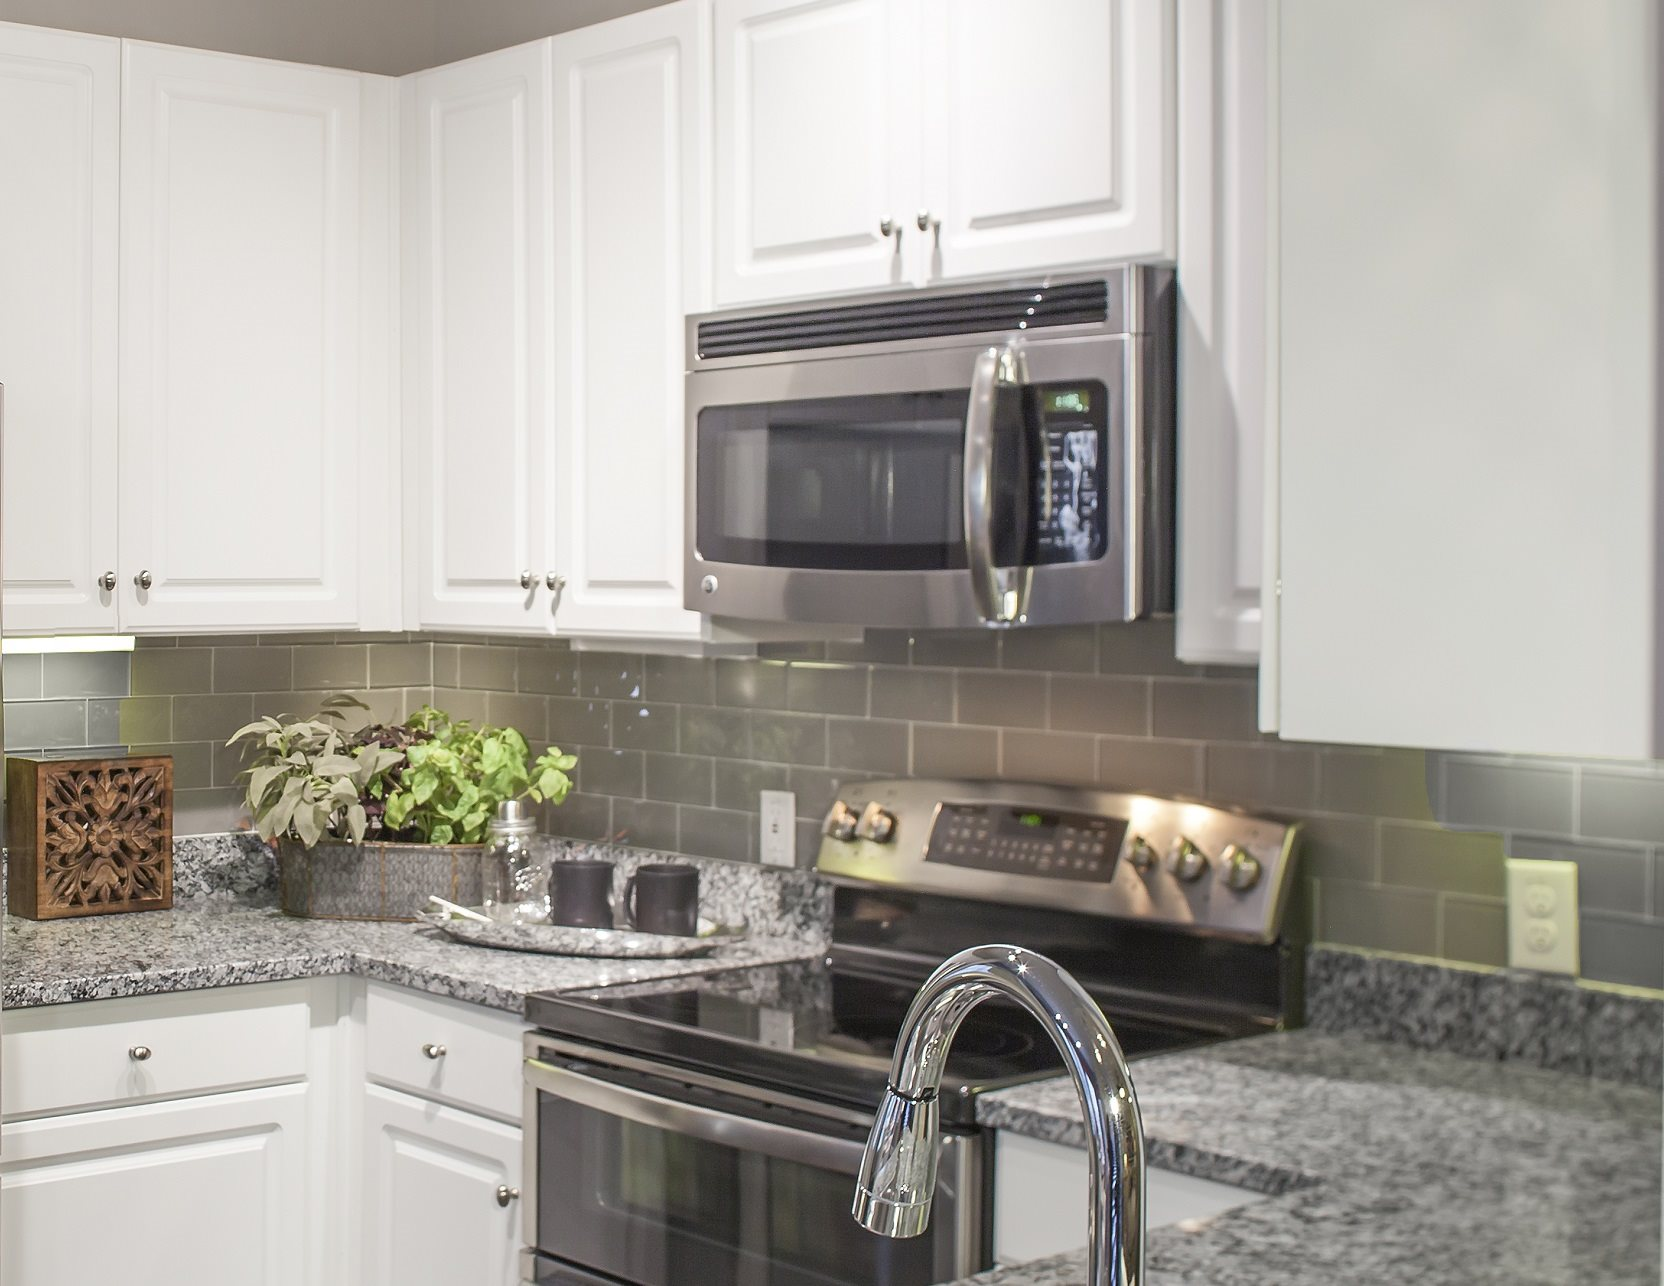 Stainless Steel GE Energy Star Appliances at Touchstone Modern Apartment Homes, 11996 Ridge Parkway, CO 80021